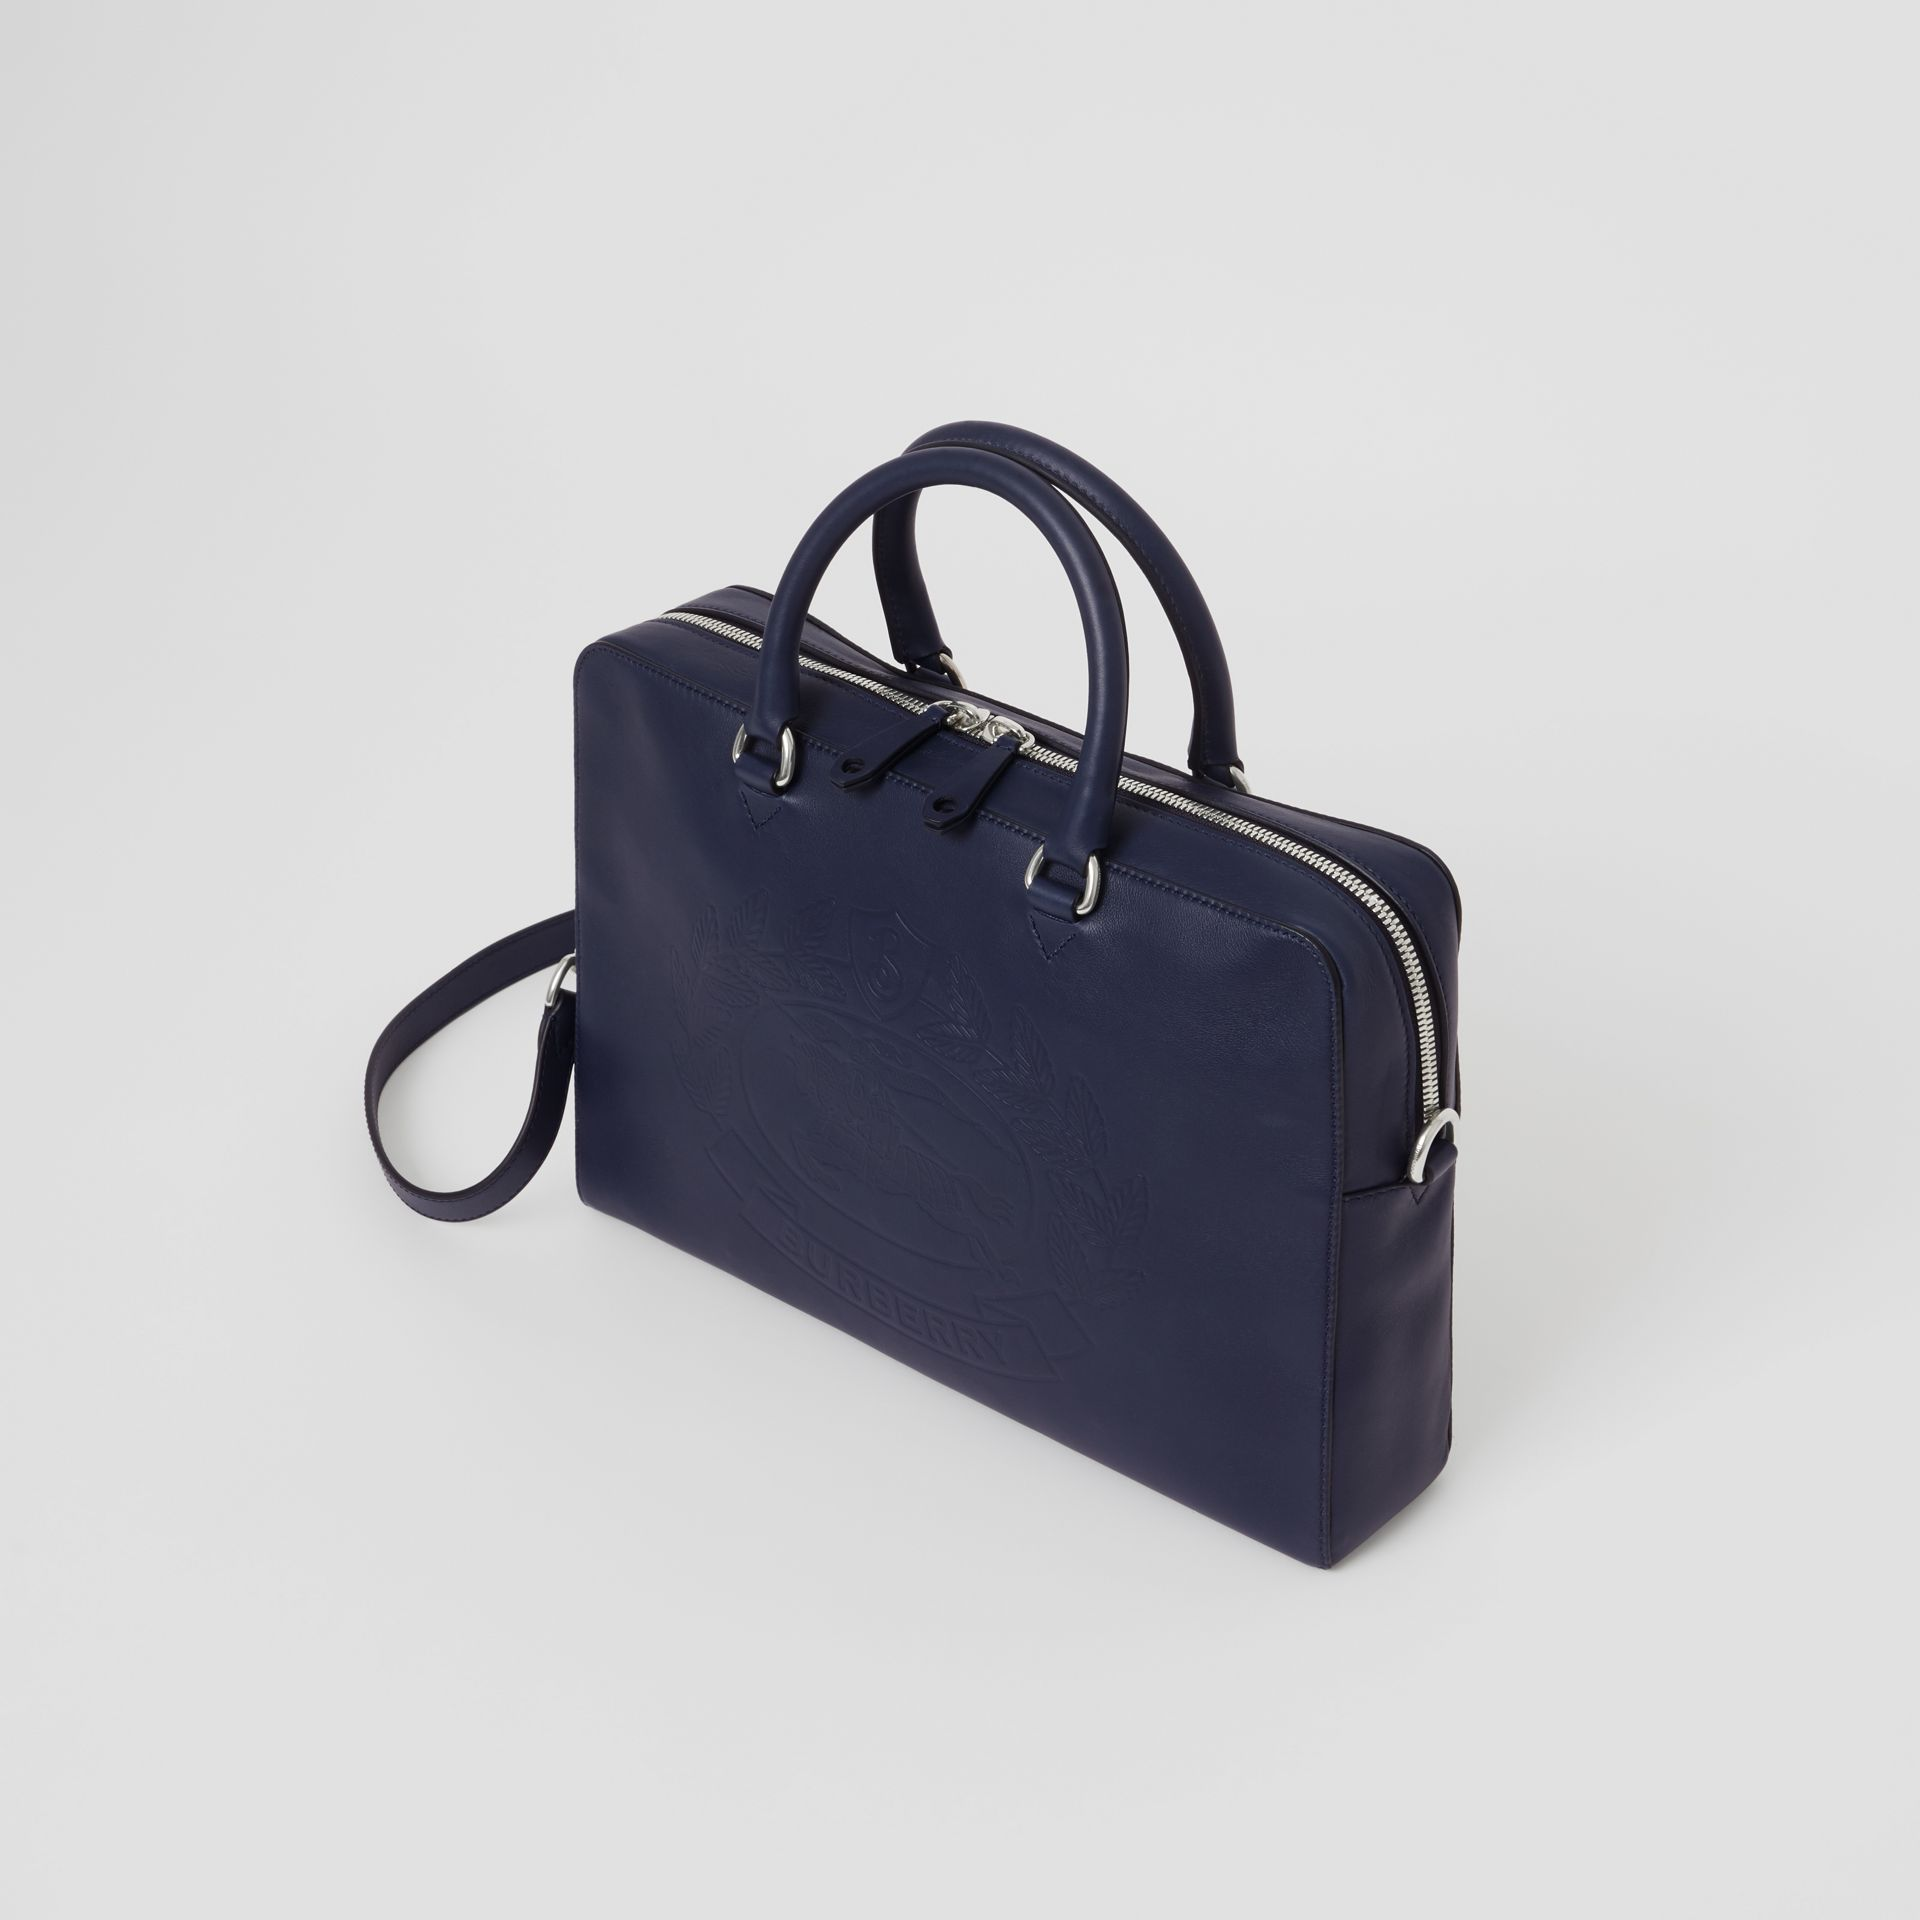 Attaché-case en cuir avec écusson estampé (Bleu Régence) - Homme | Burberry - photo de la galerie 4